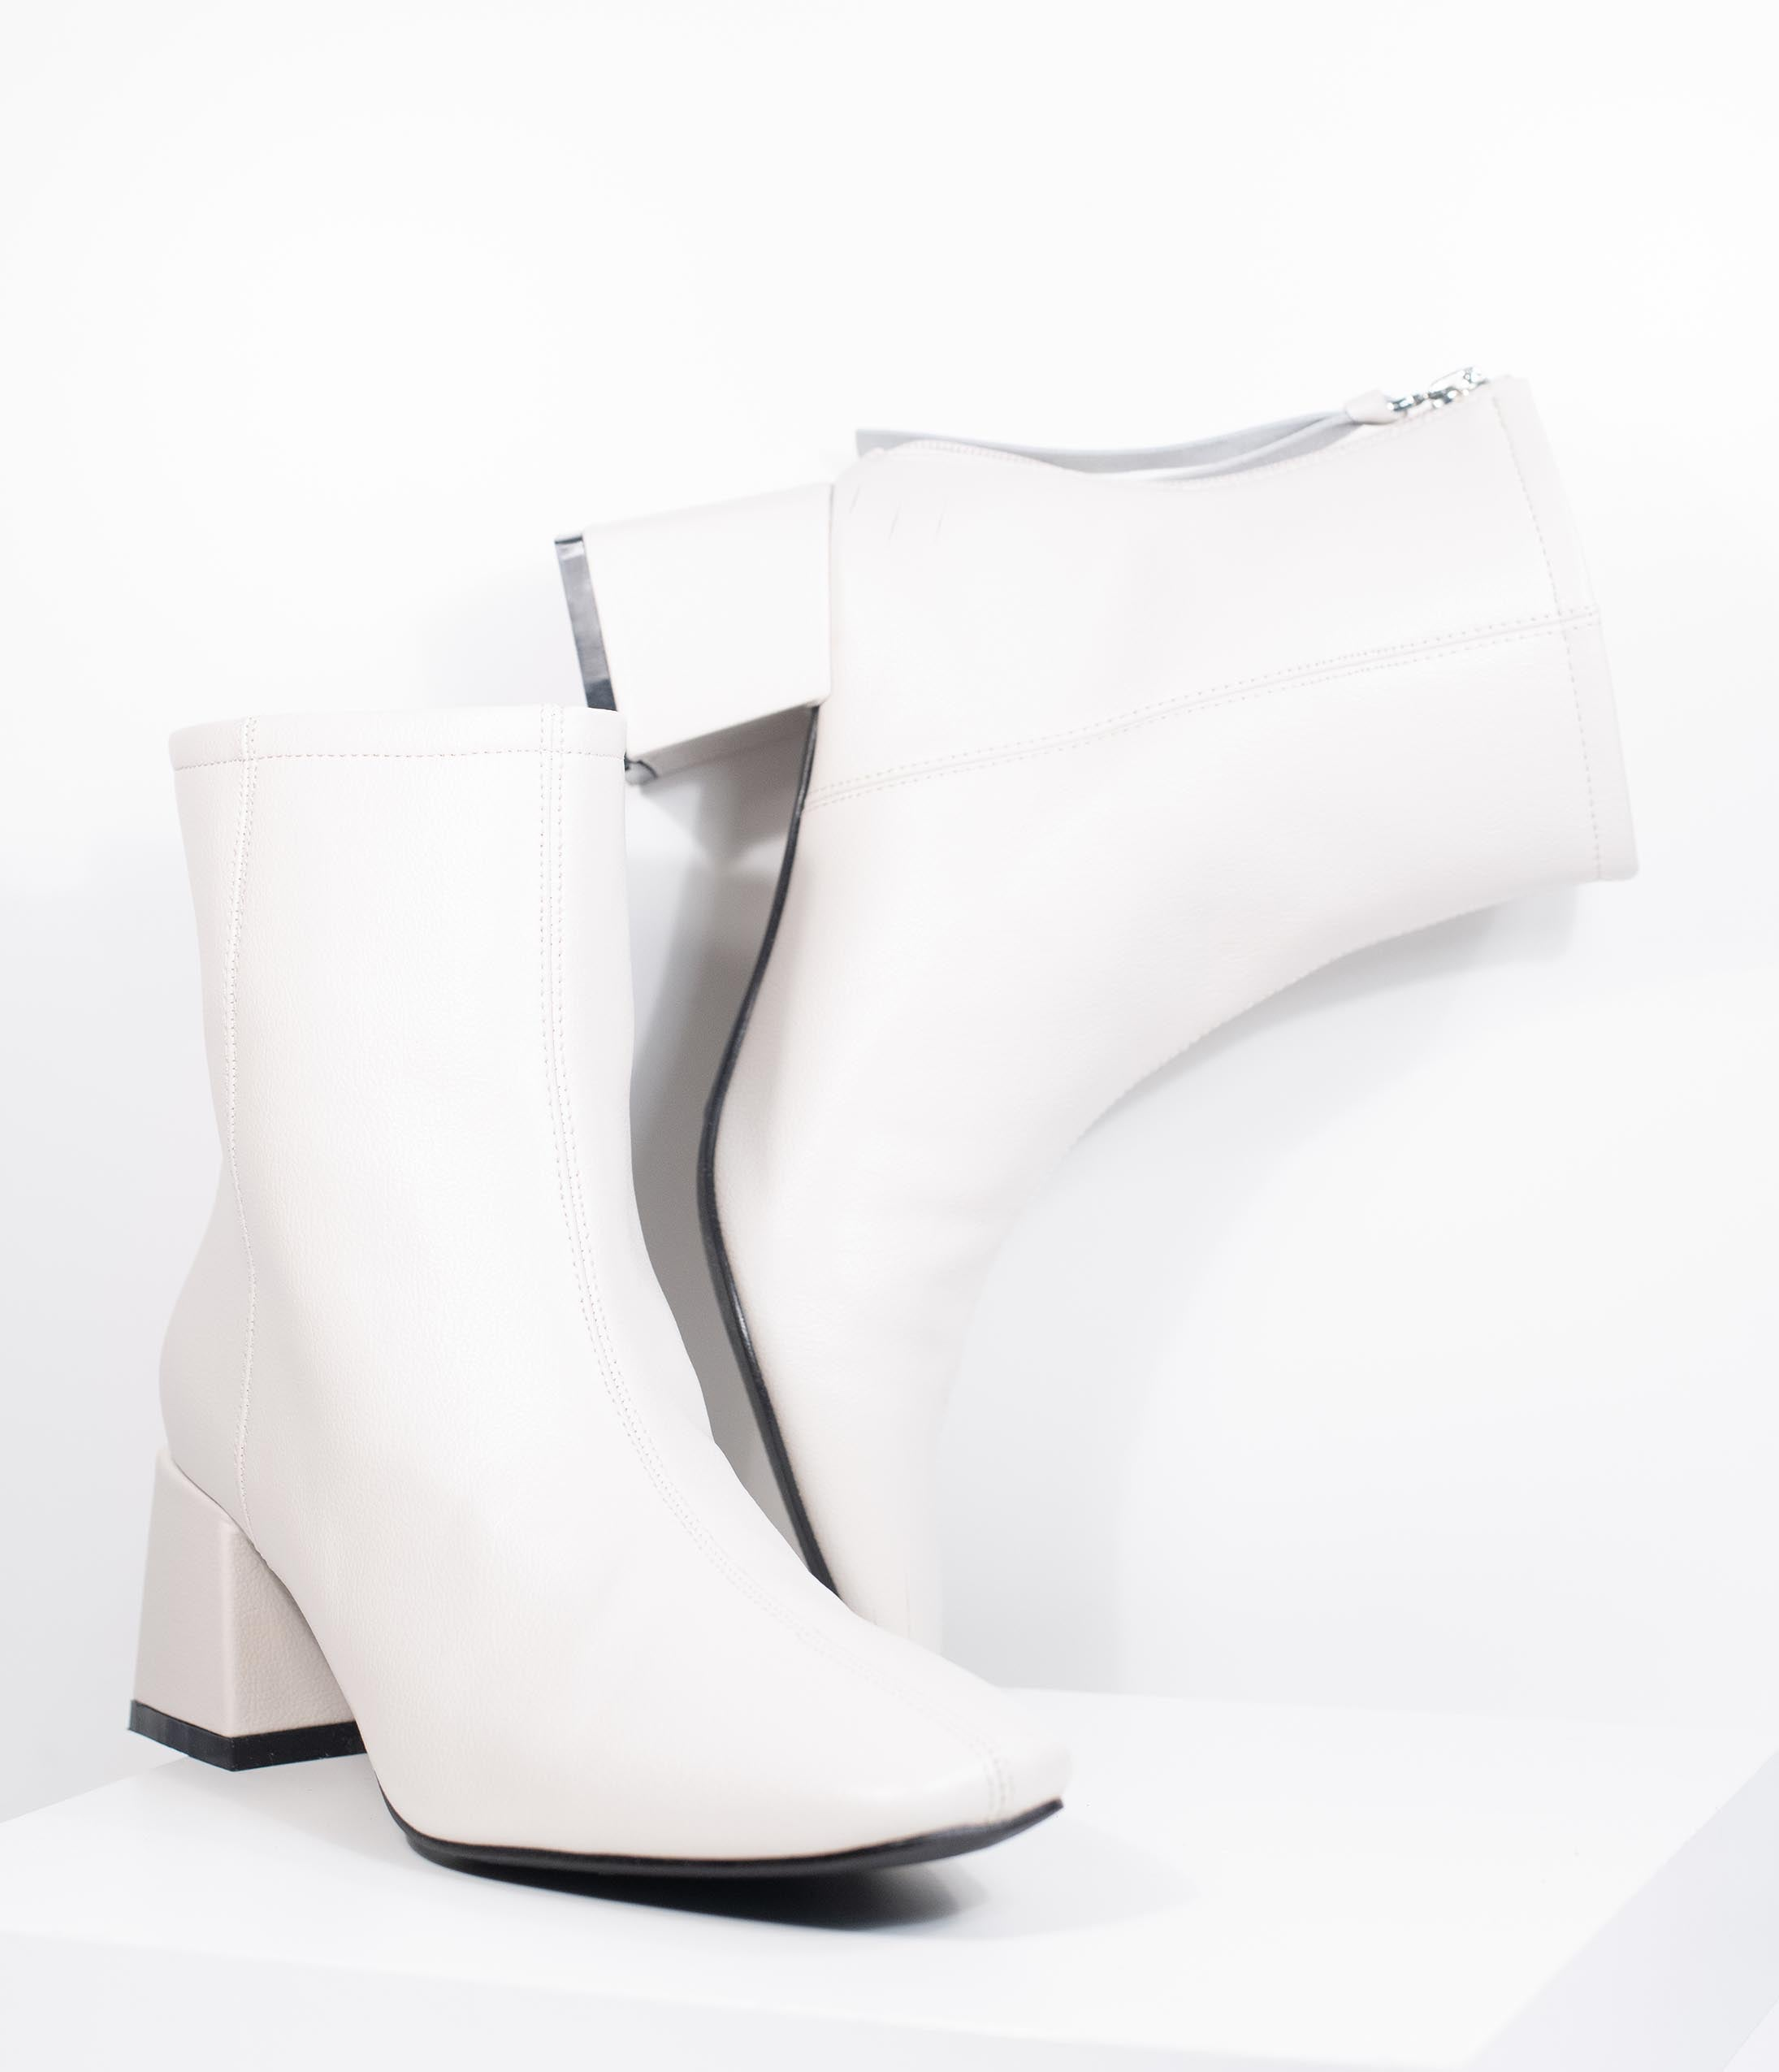 Vintage Boots- Buy Winter Retro Boots 1960S White Leatherette Block Heel Kadee Boot $54.00 AT vintagedancer.com